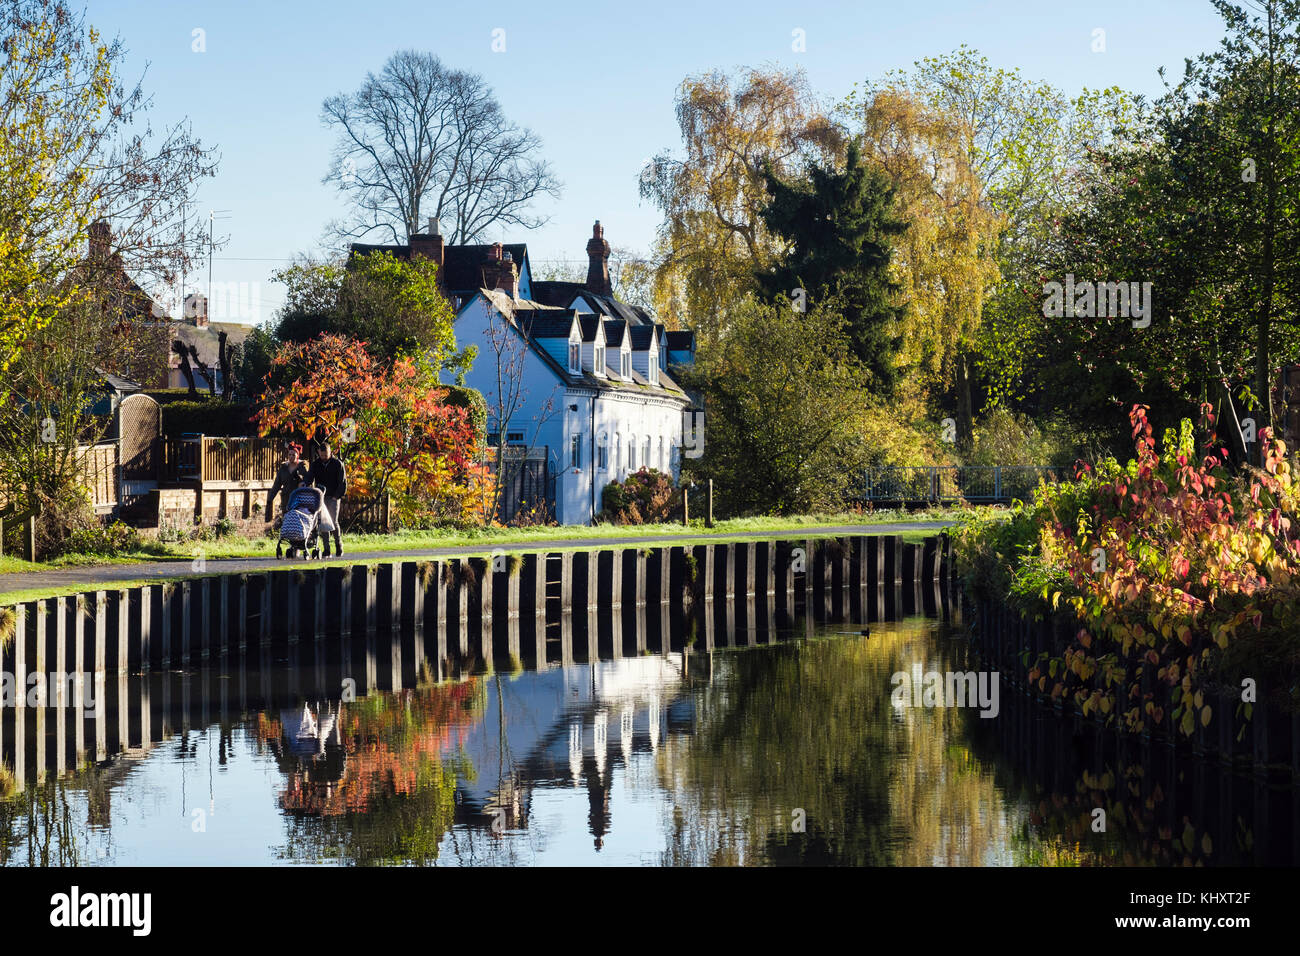 Couple pushing a pushchair walking on canal towpath in Vines Park in autumn. Droitwich Spa, Worcestershire, England, - Stock Image